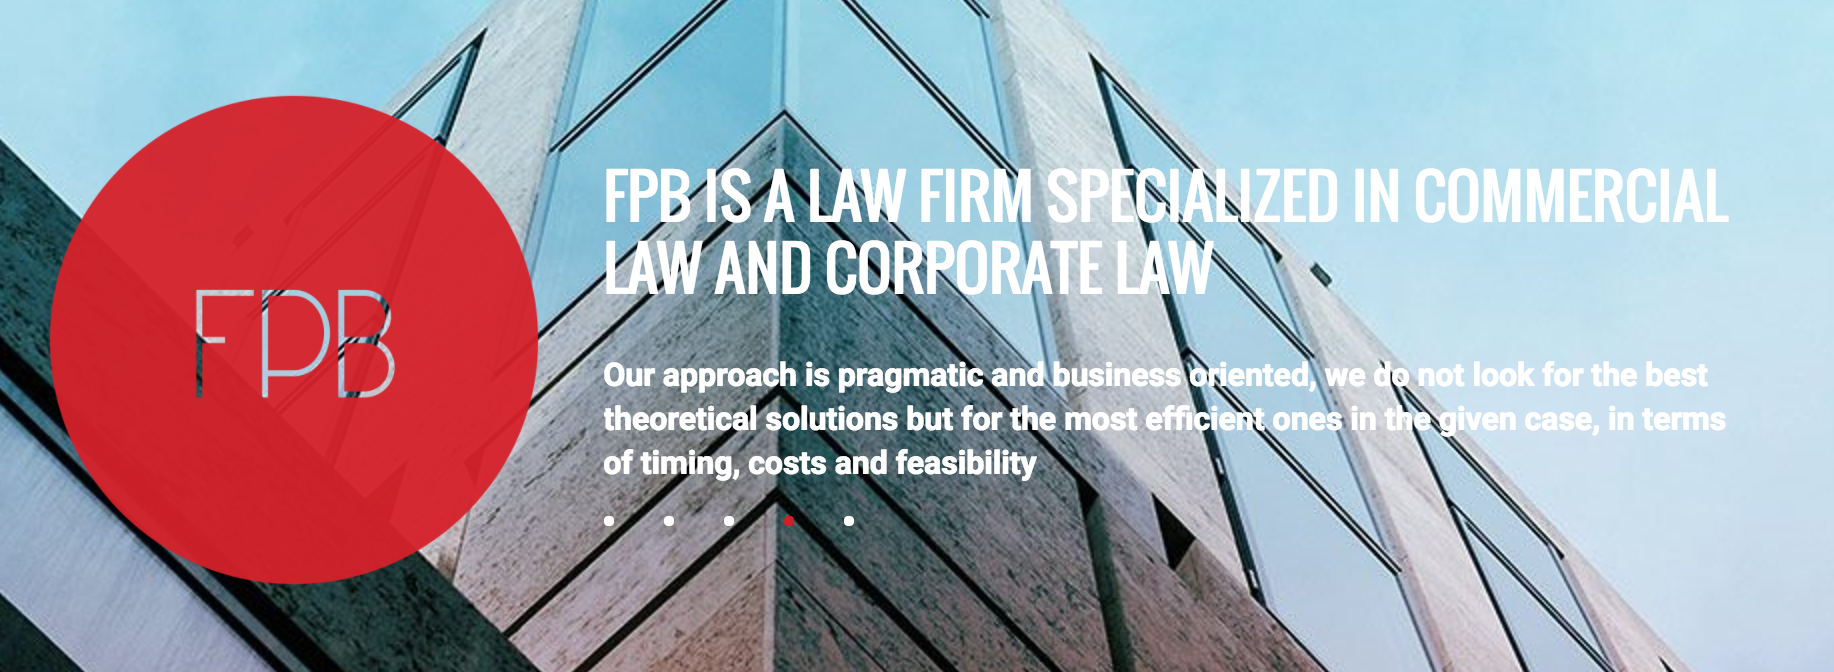 Home - FPB Legal | Law Firm in Milan